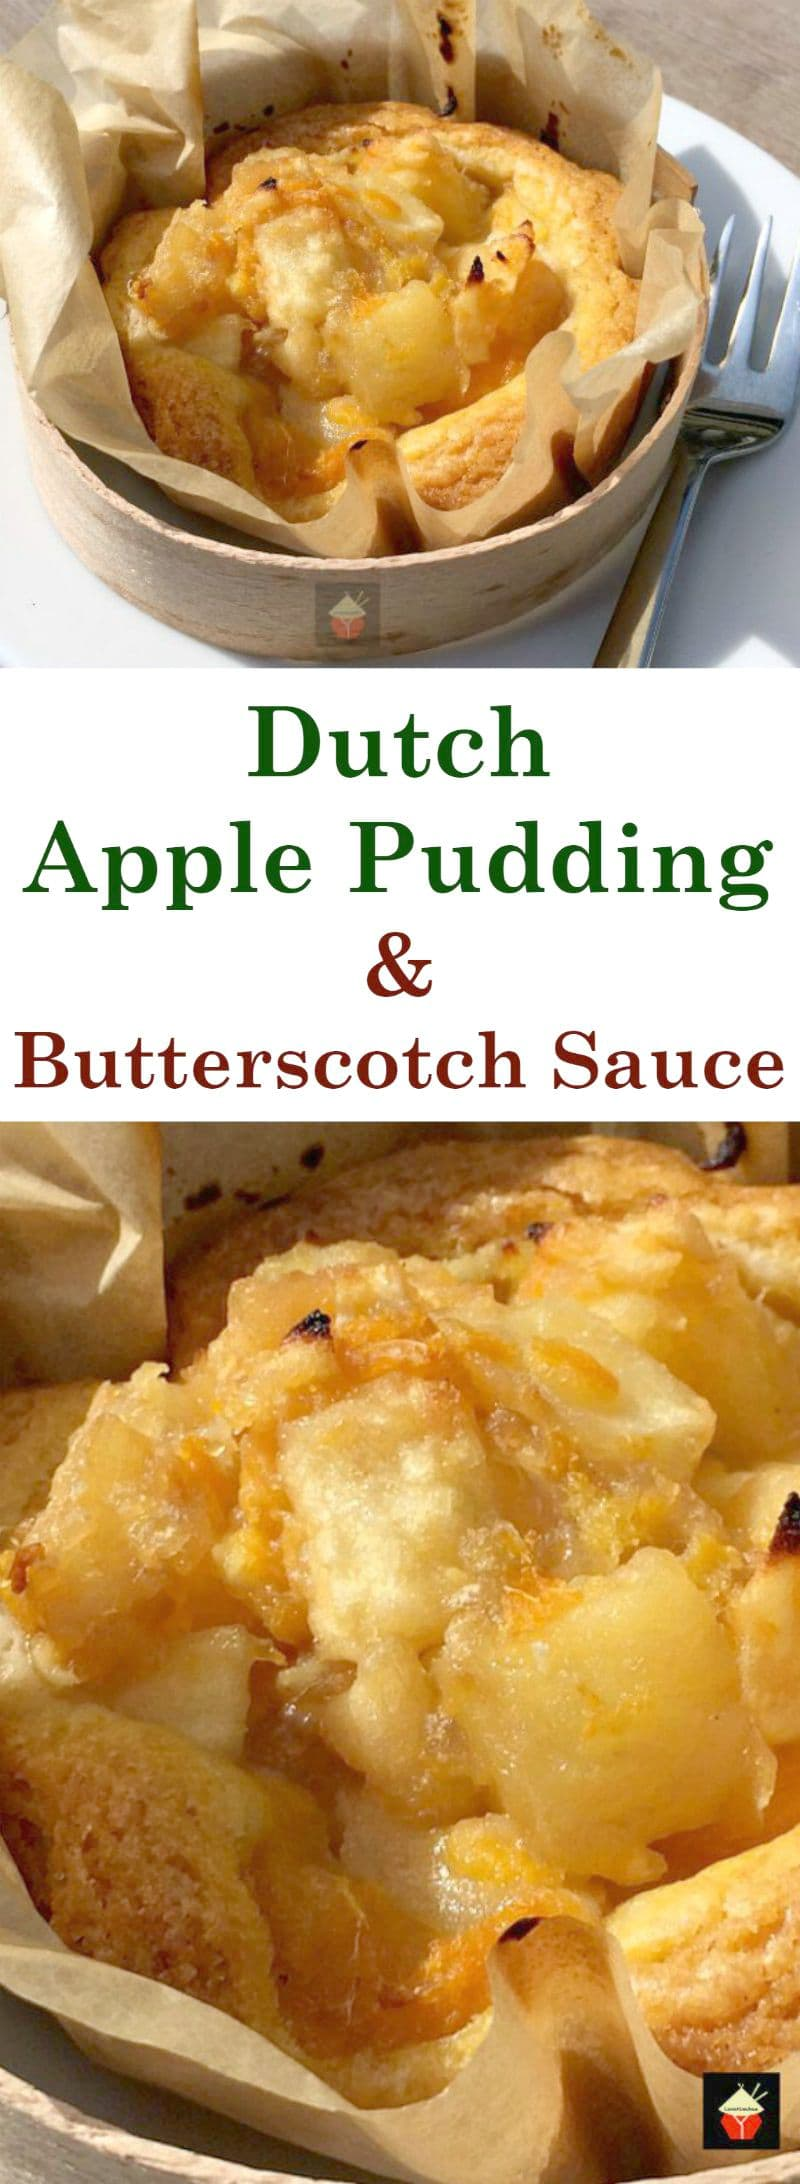 Dutch Apple Pudding with Butterscotch Sauce, this is a delicious dessert, wonderful served warm. Lovely chunks of apple, laced with cinnamon and then served with a drizzle of warm butterscotch sauce. So Yummy!